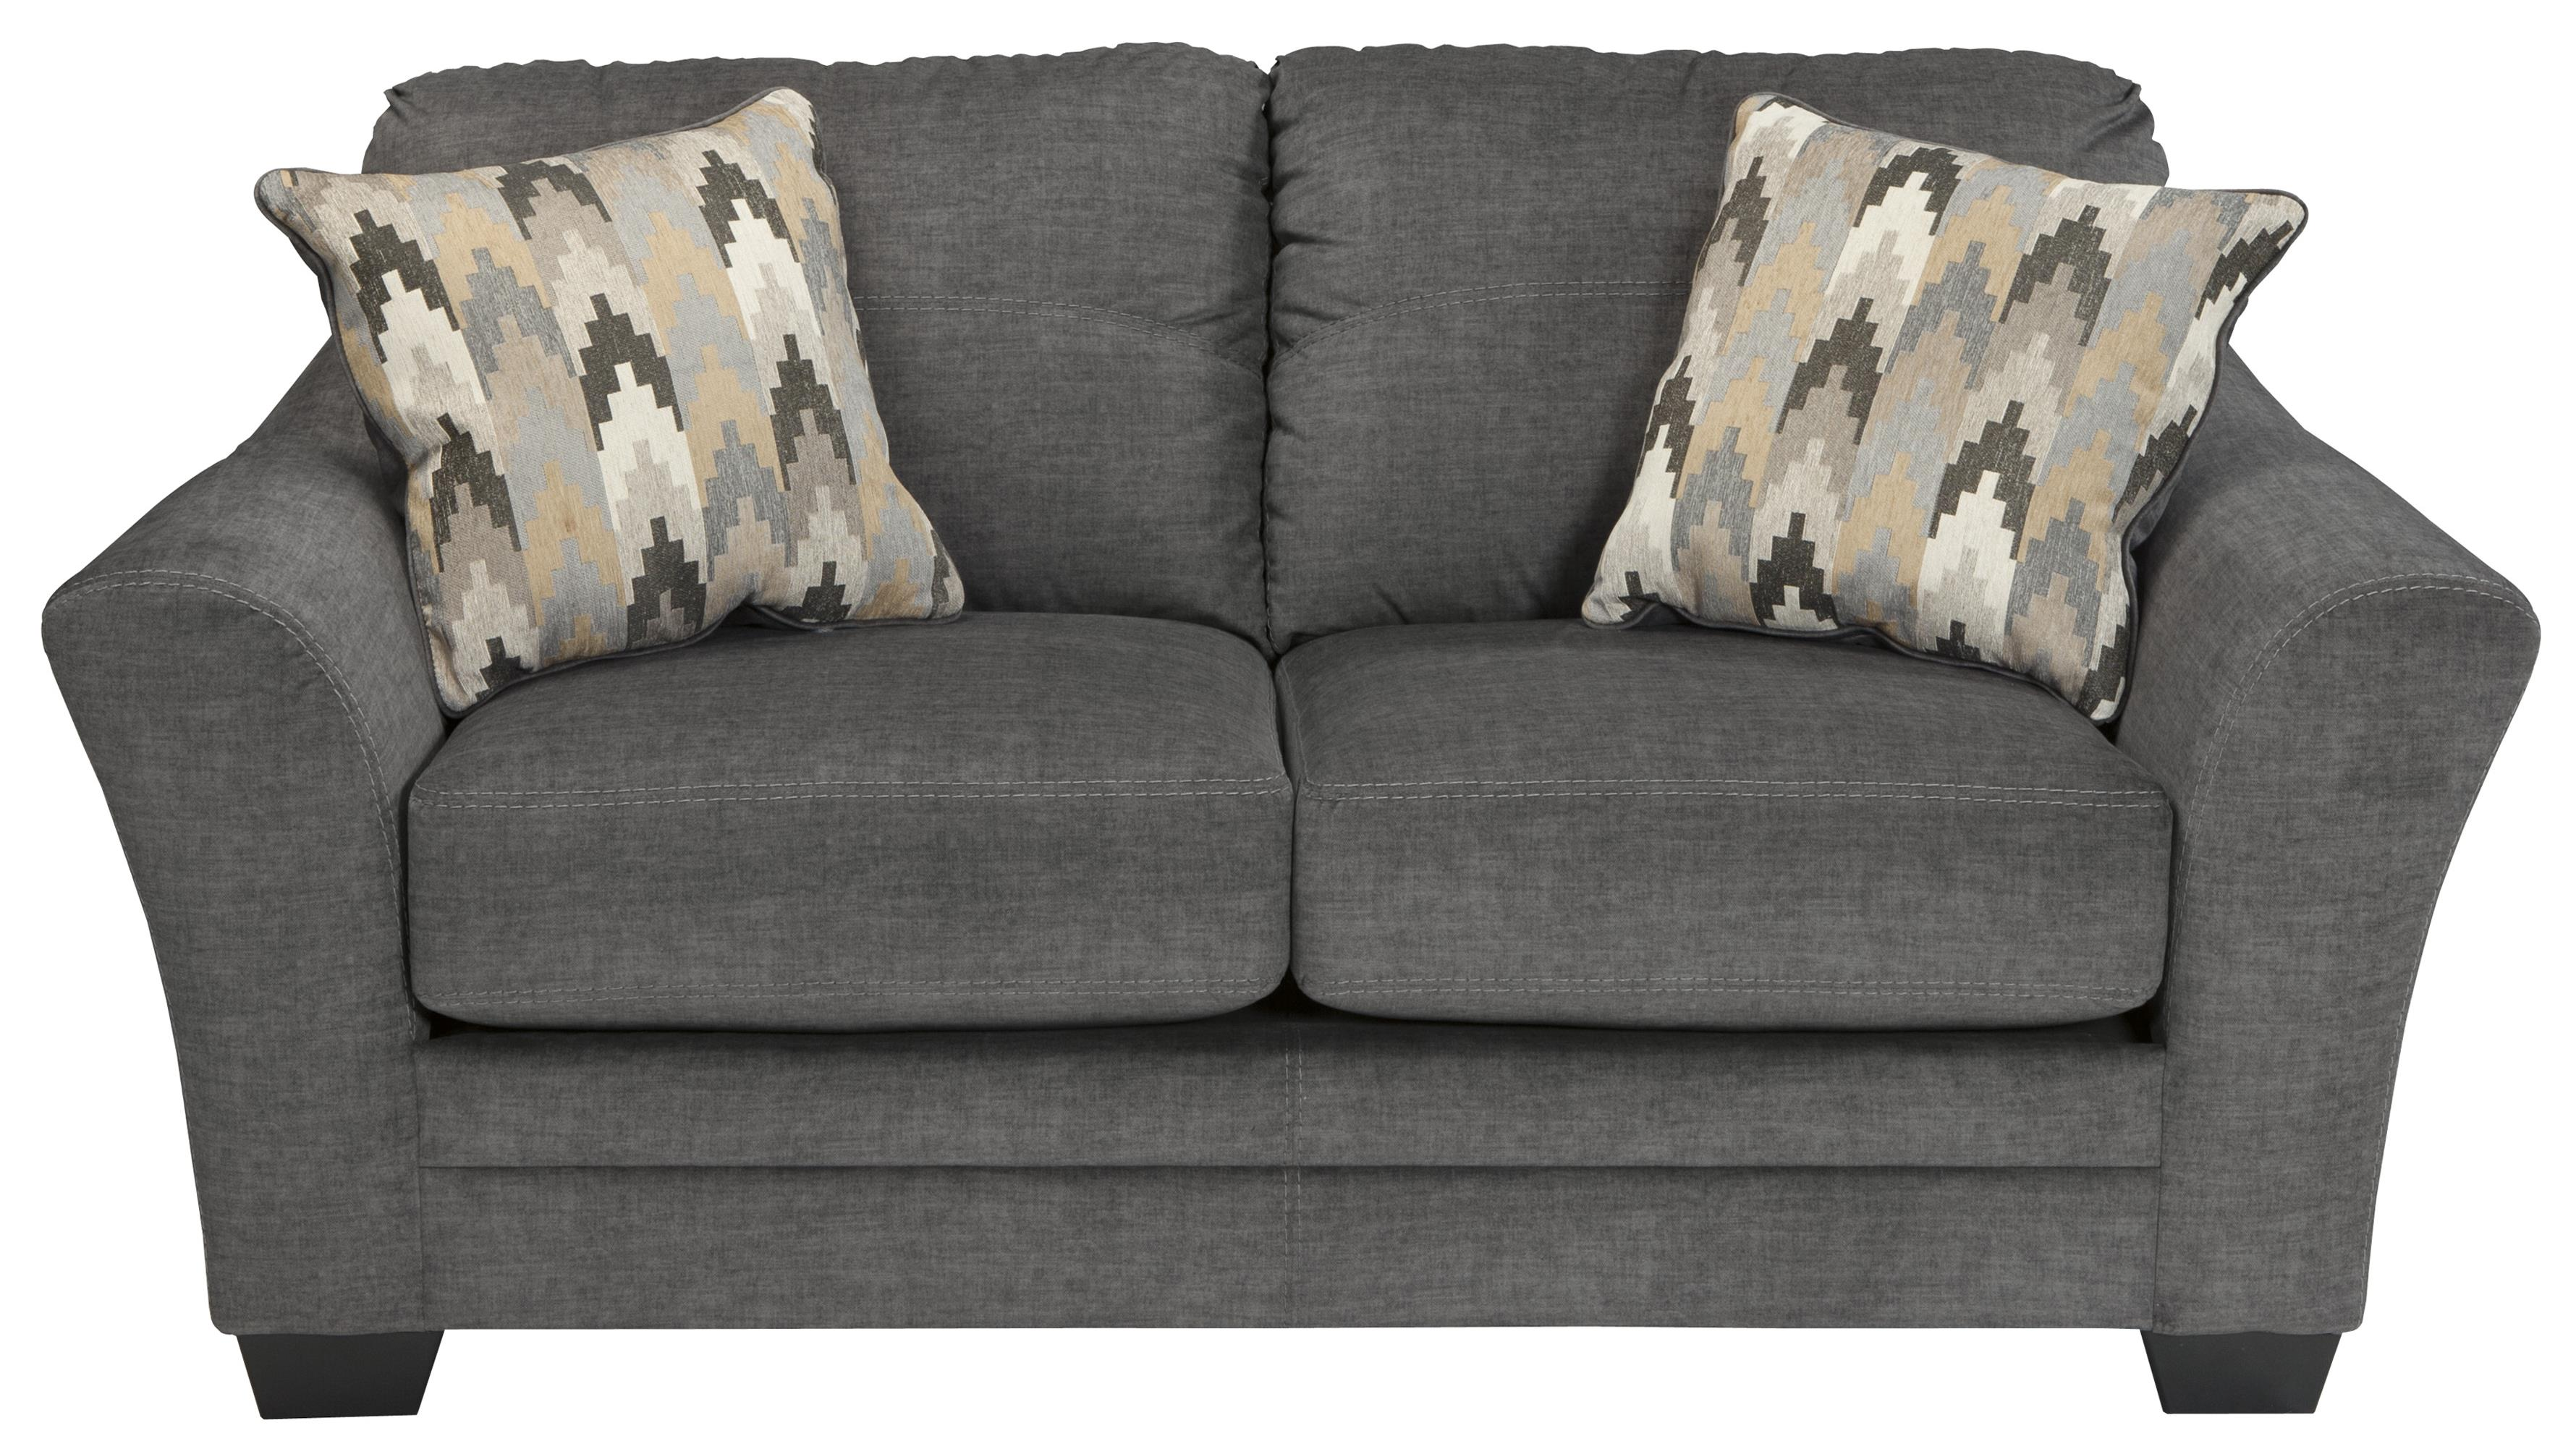 Benchcraft Braxlin Loveseat - Item Number: 8850235